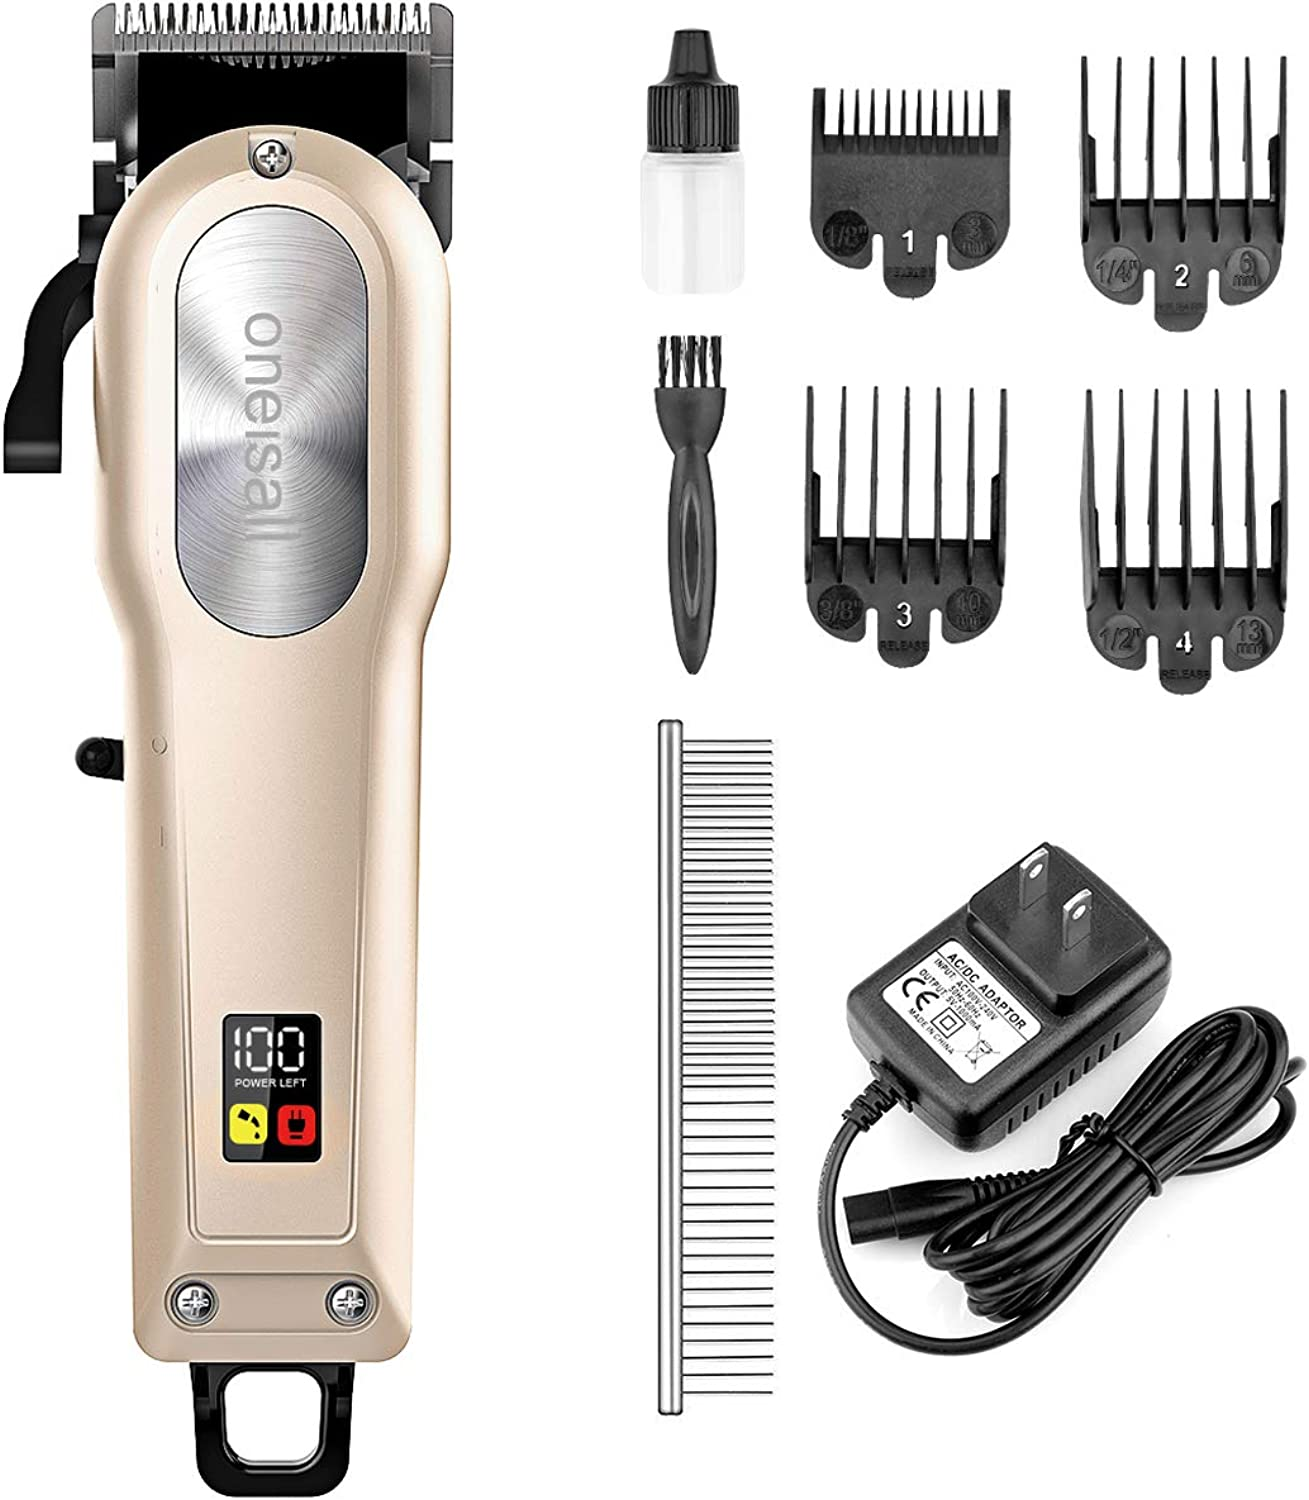 Oneisall Dog Grooming Clippers,Professional Rechargeable Hair Clipper Heavy Duty Shaver Low Noise Pet Grooming Kits,Suitable for Dogs,Cats,Horse and Other Animals,gold